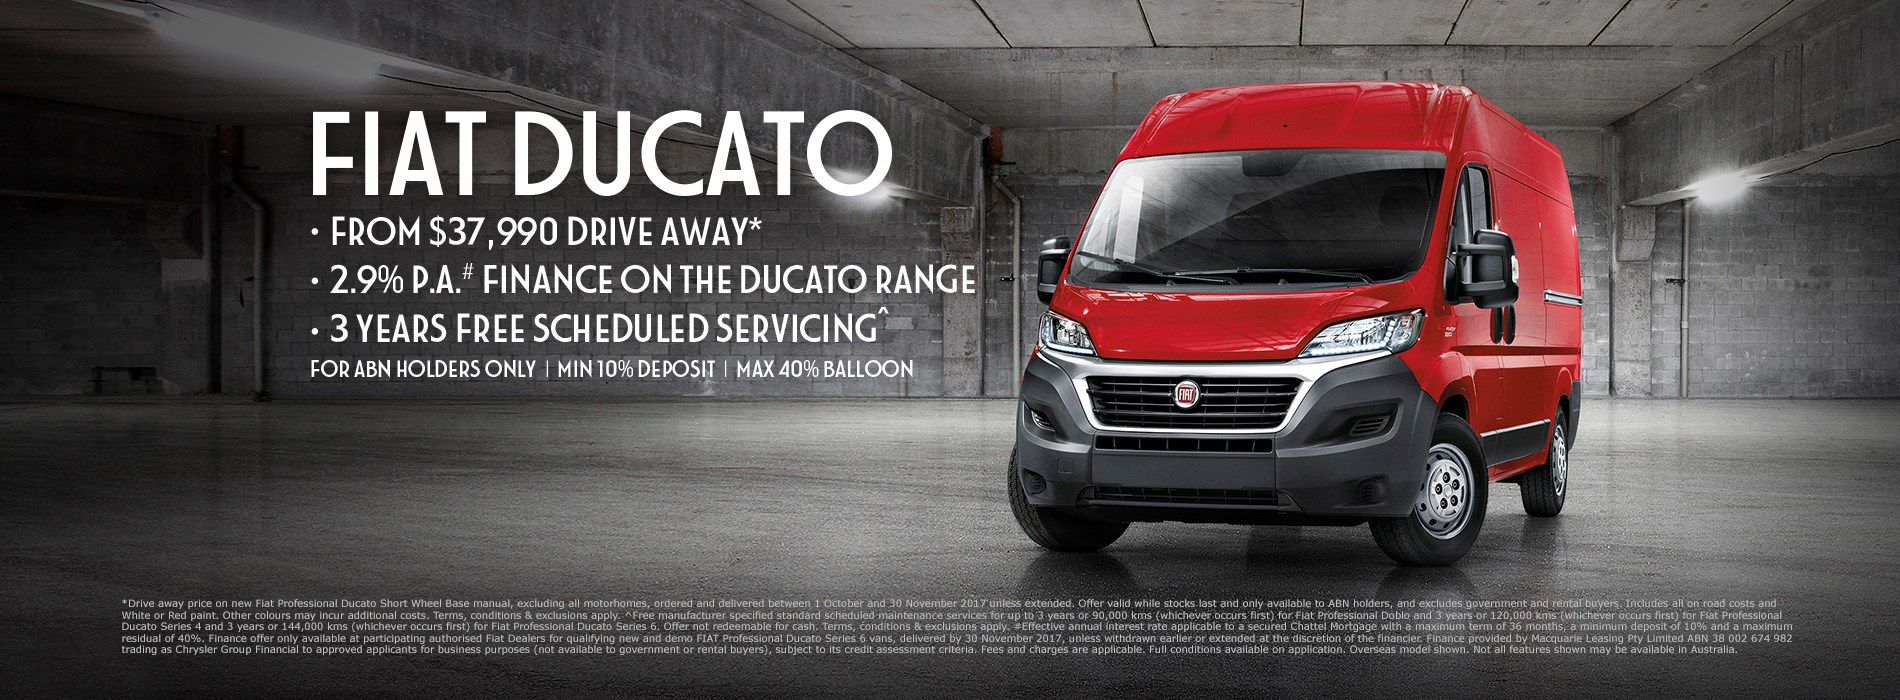 Fiat Ducato $37.9K Drive Away Offer